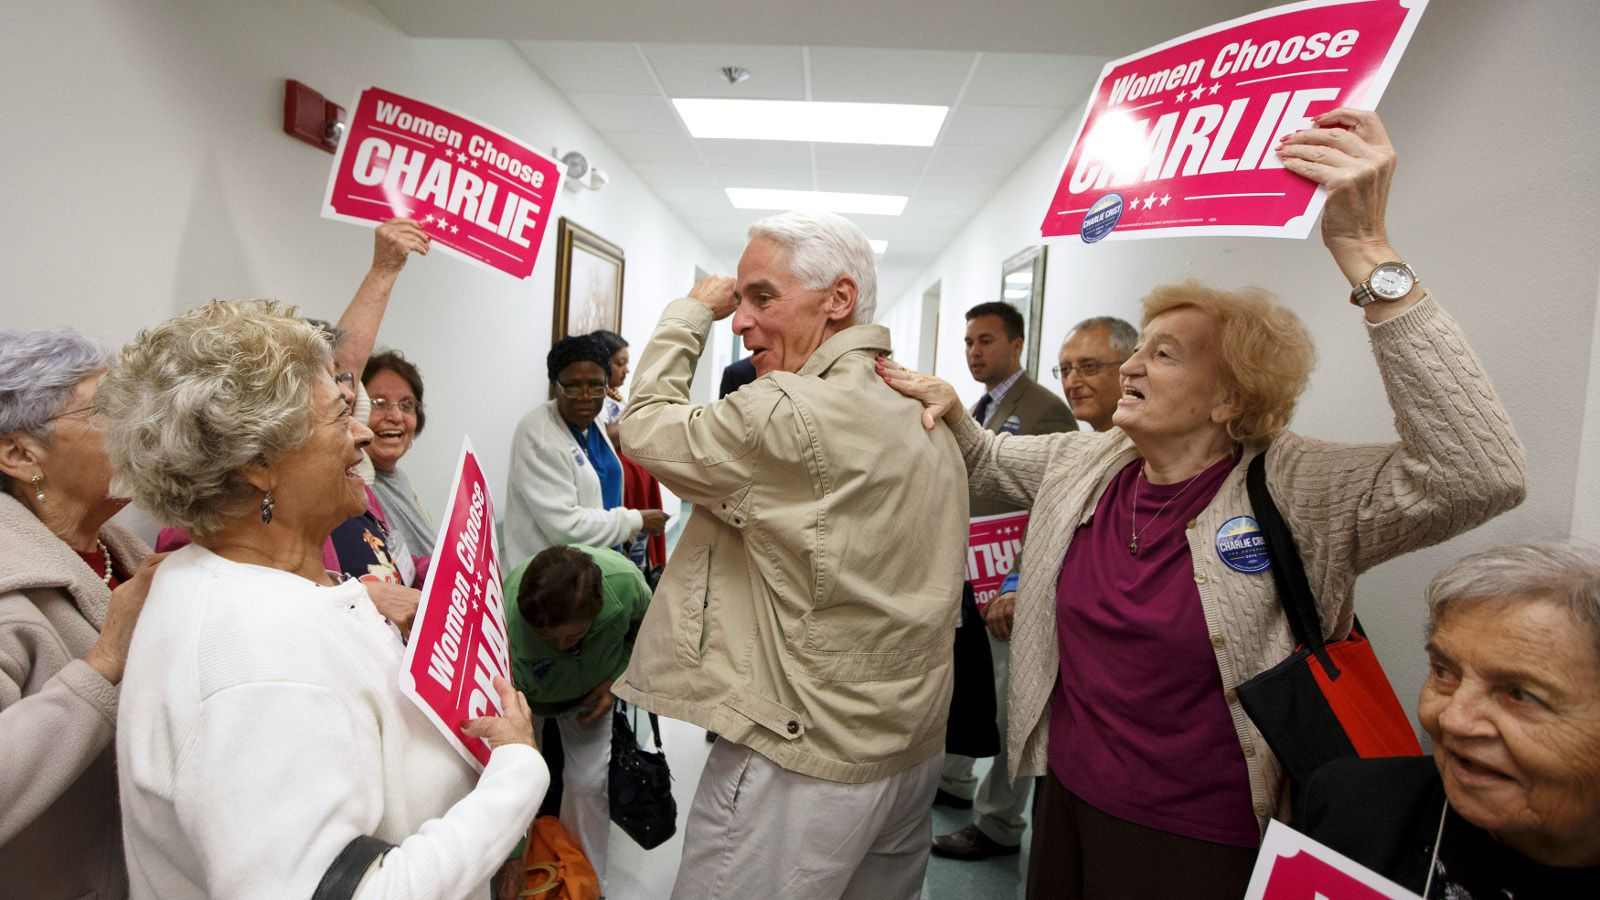 Former Florida Governor and Democratic gubernatorial candidate Charlie Crist (C) heads out of the Mid-County Senior Center, during a four-city bus campaign tour in Lake Worth, Florida November 3, 2014. Florida Republican Governor Rick Scott and Crist remain statistically tied in their bitterly fought campaign, according to a poll released on Monday, the eve of Election Day.